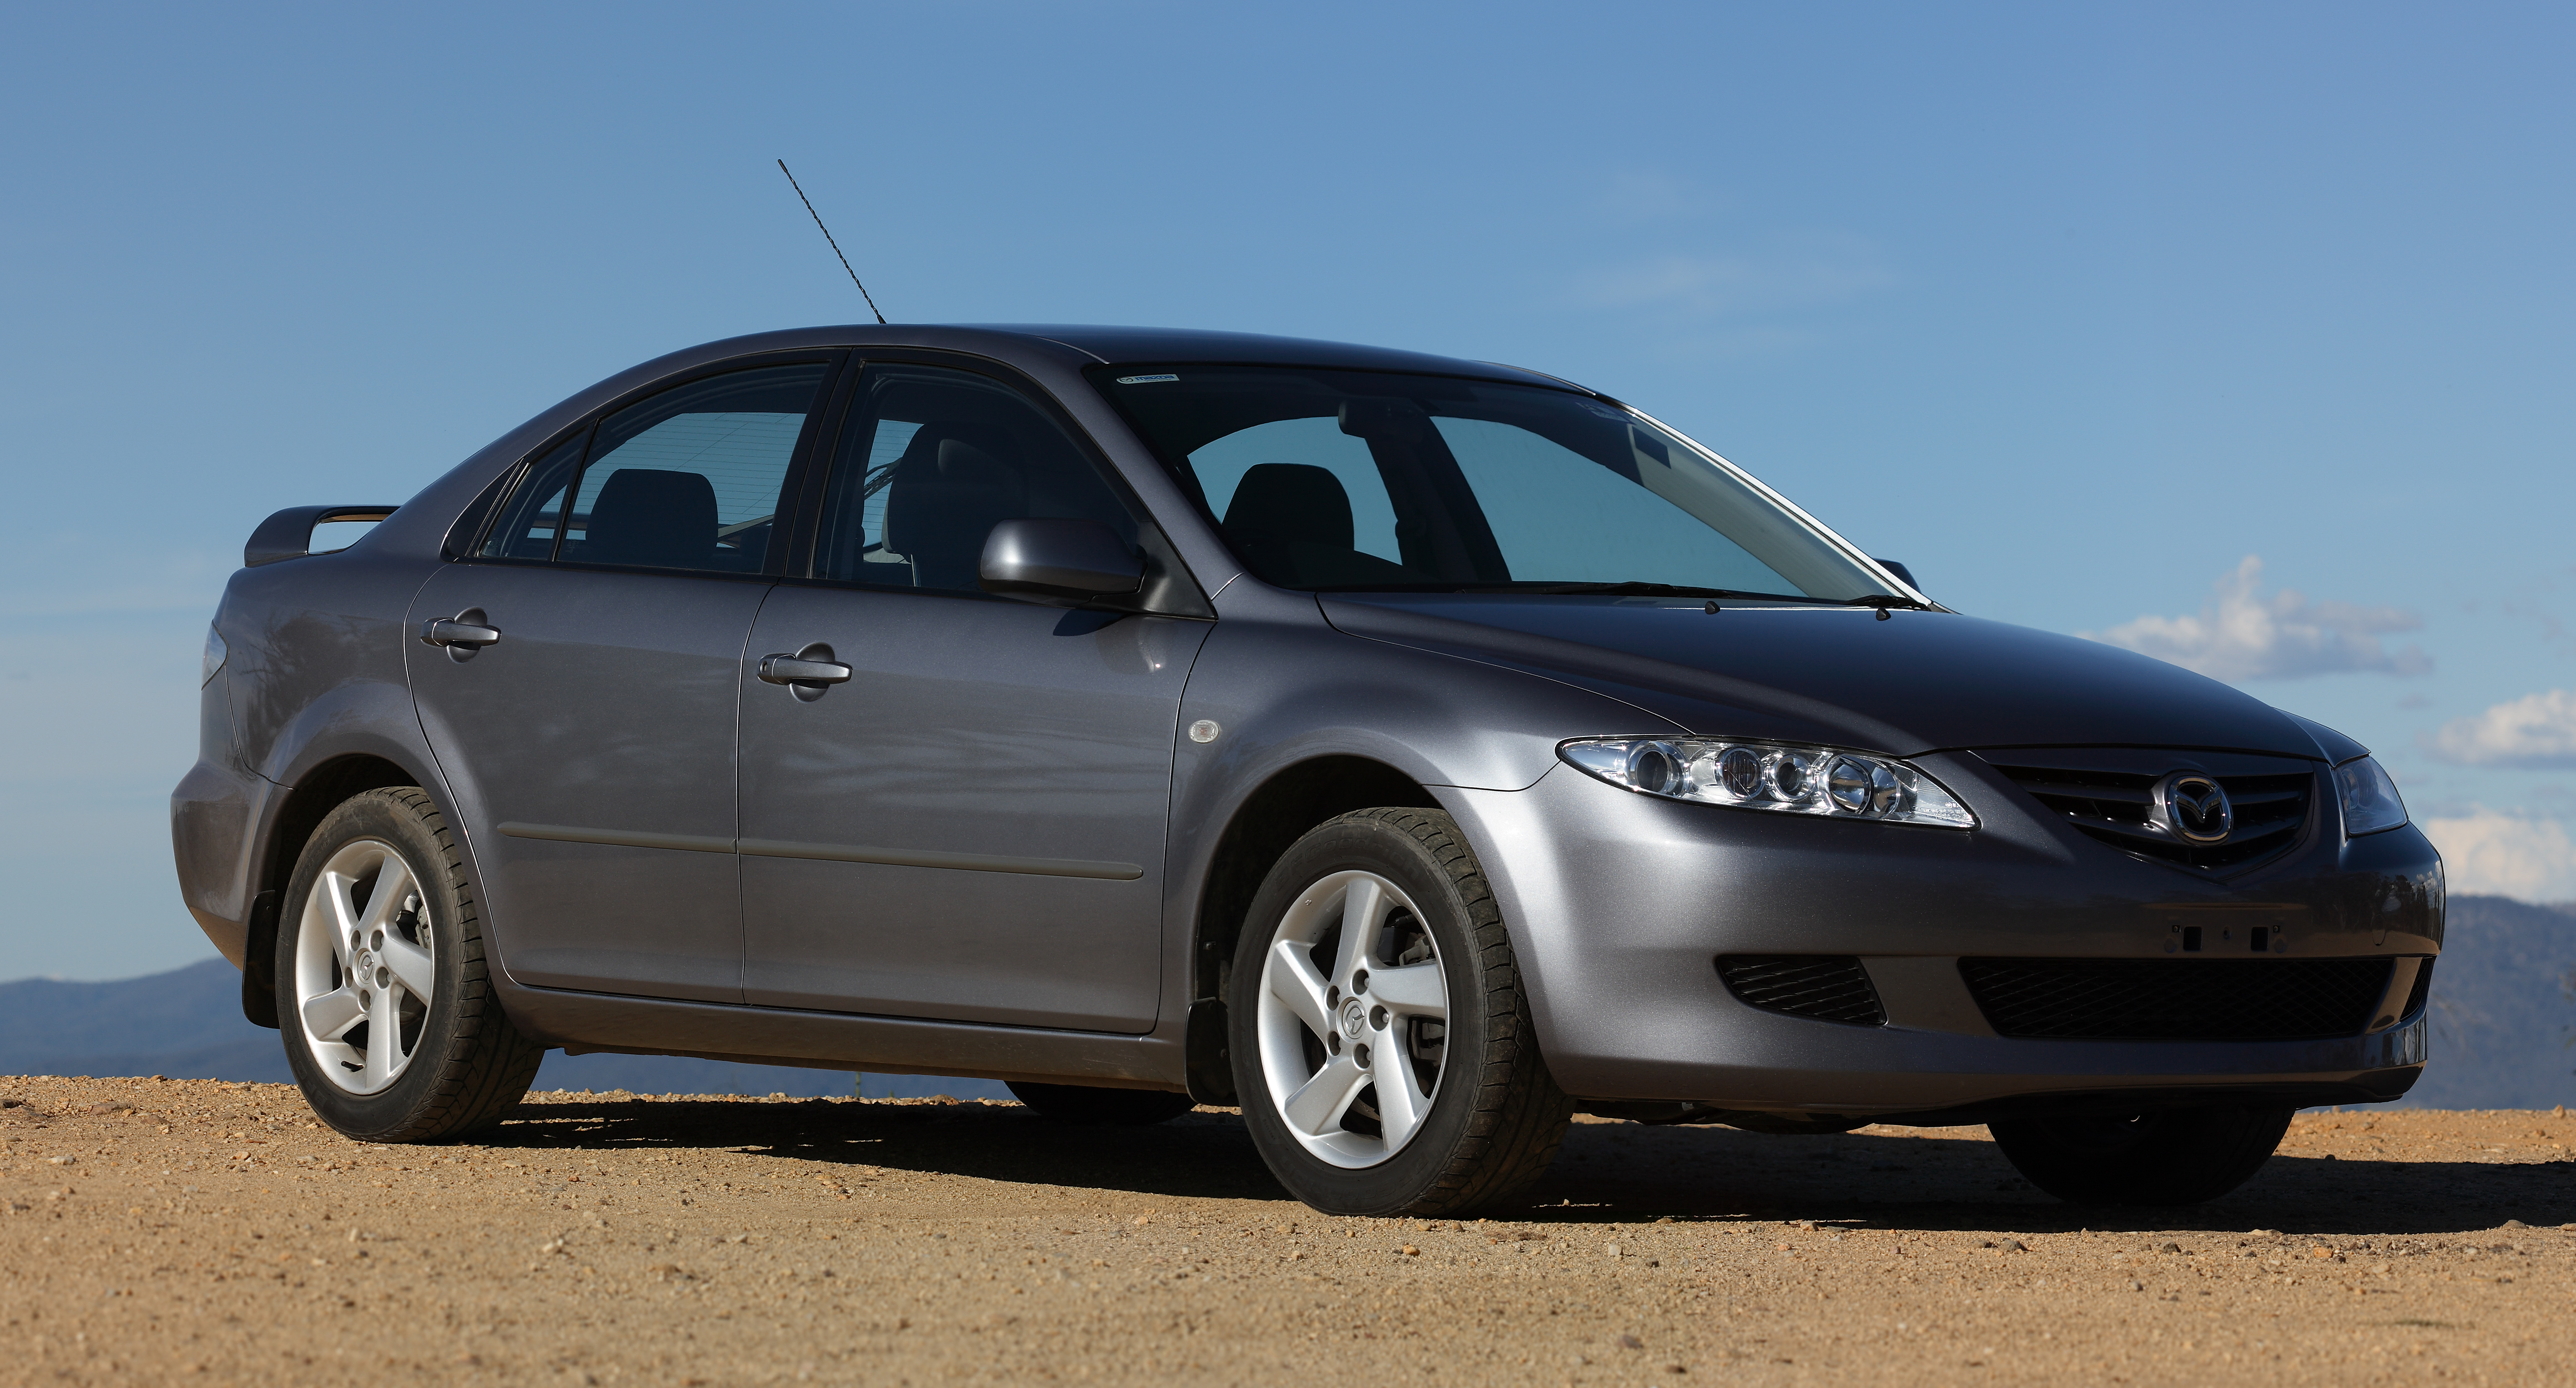 File:2003 Mazda6 GG Classic Hatch, McMillans Lookout, Vic, 21.12 ...